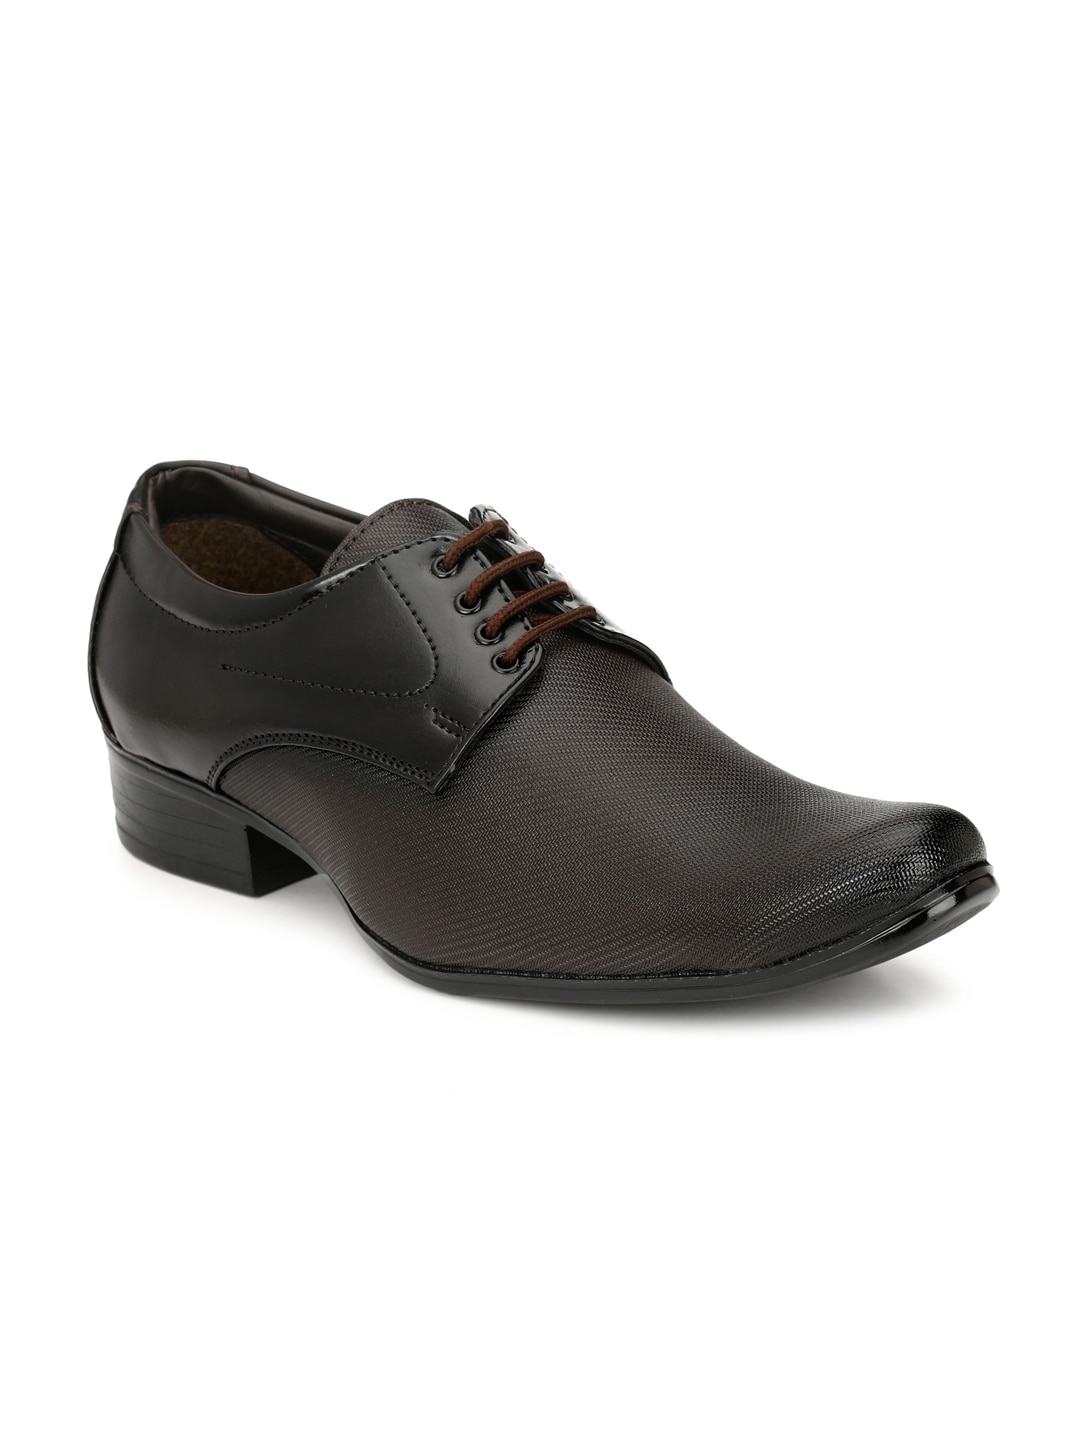 Sir Corbett Men Brown Formal Shoes image